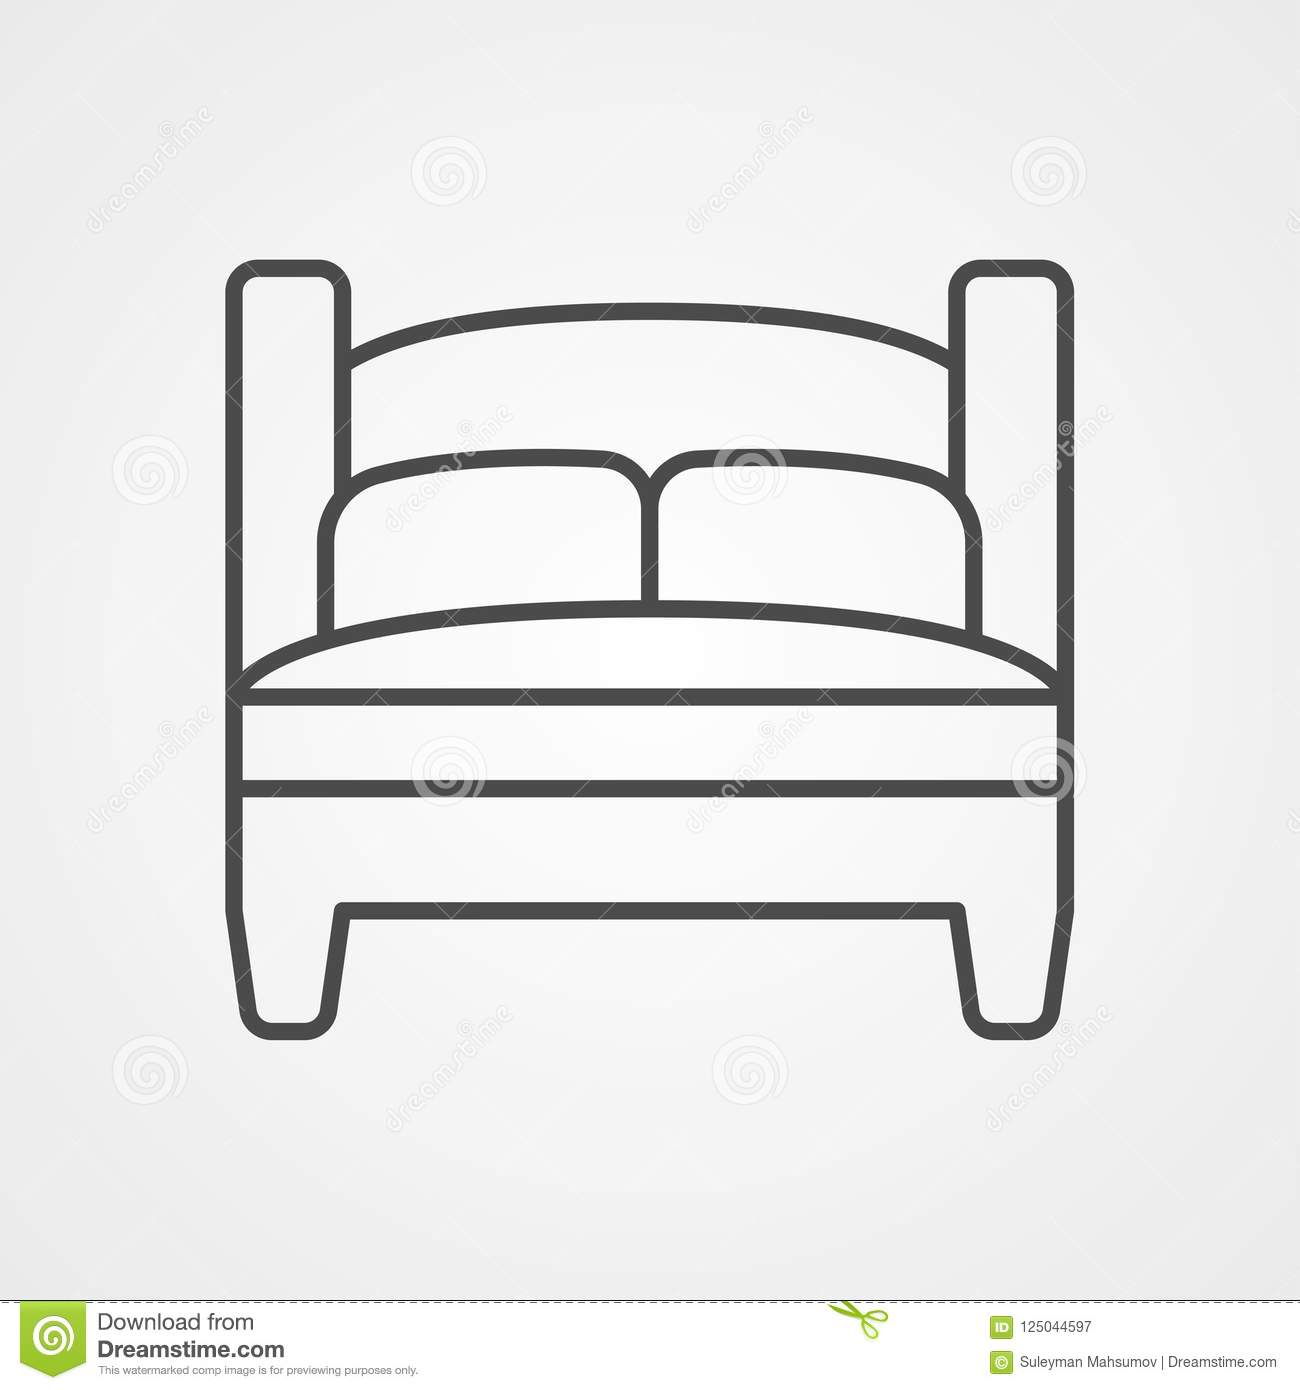 Bed Vector Icon Sign Symbol Stock Vector Illustration Of Bedding